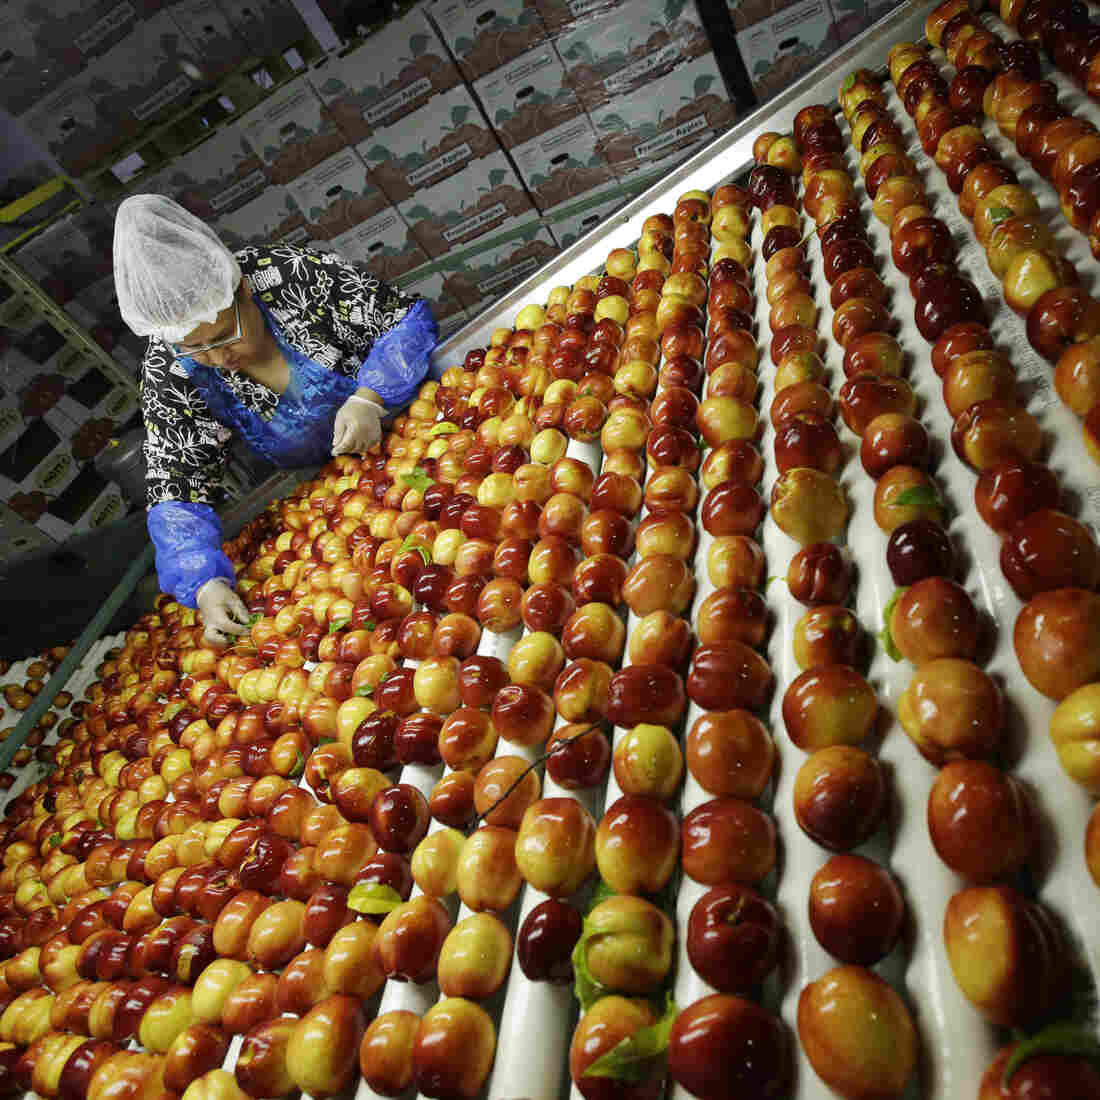 U.S. Lets 141 Trillion Calories Of Food Go To Waste Each Year